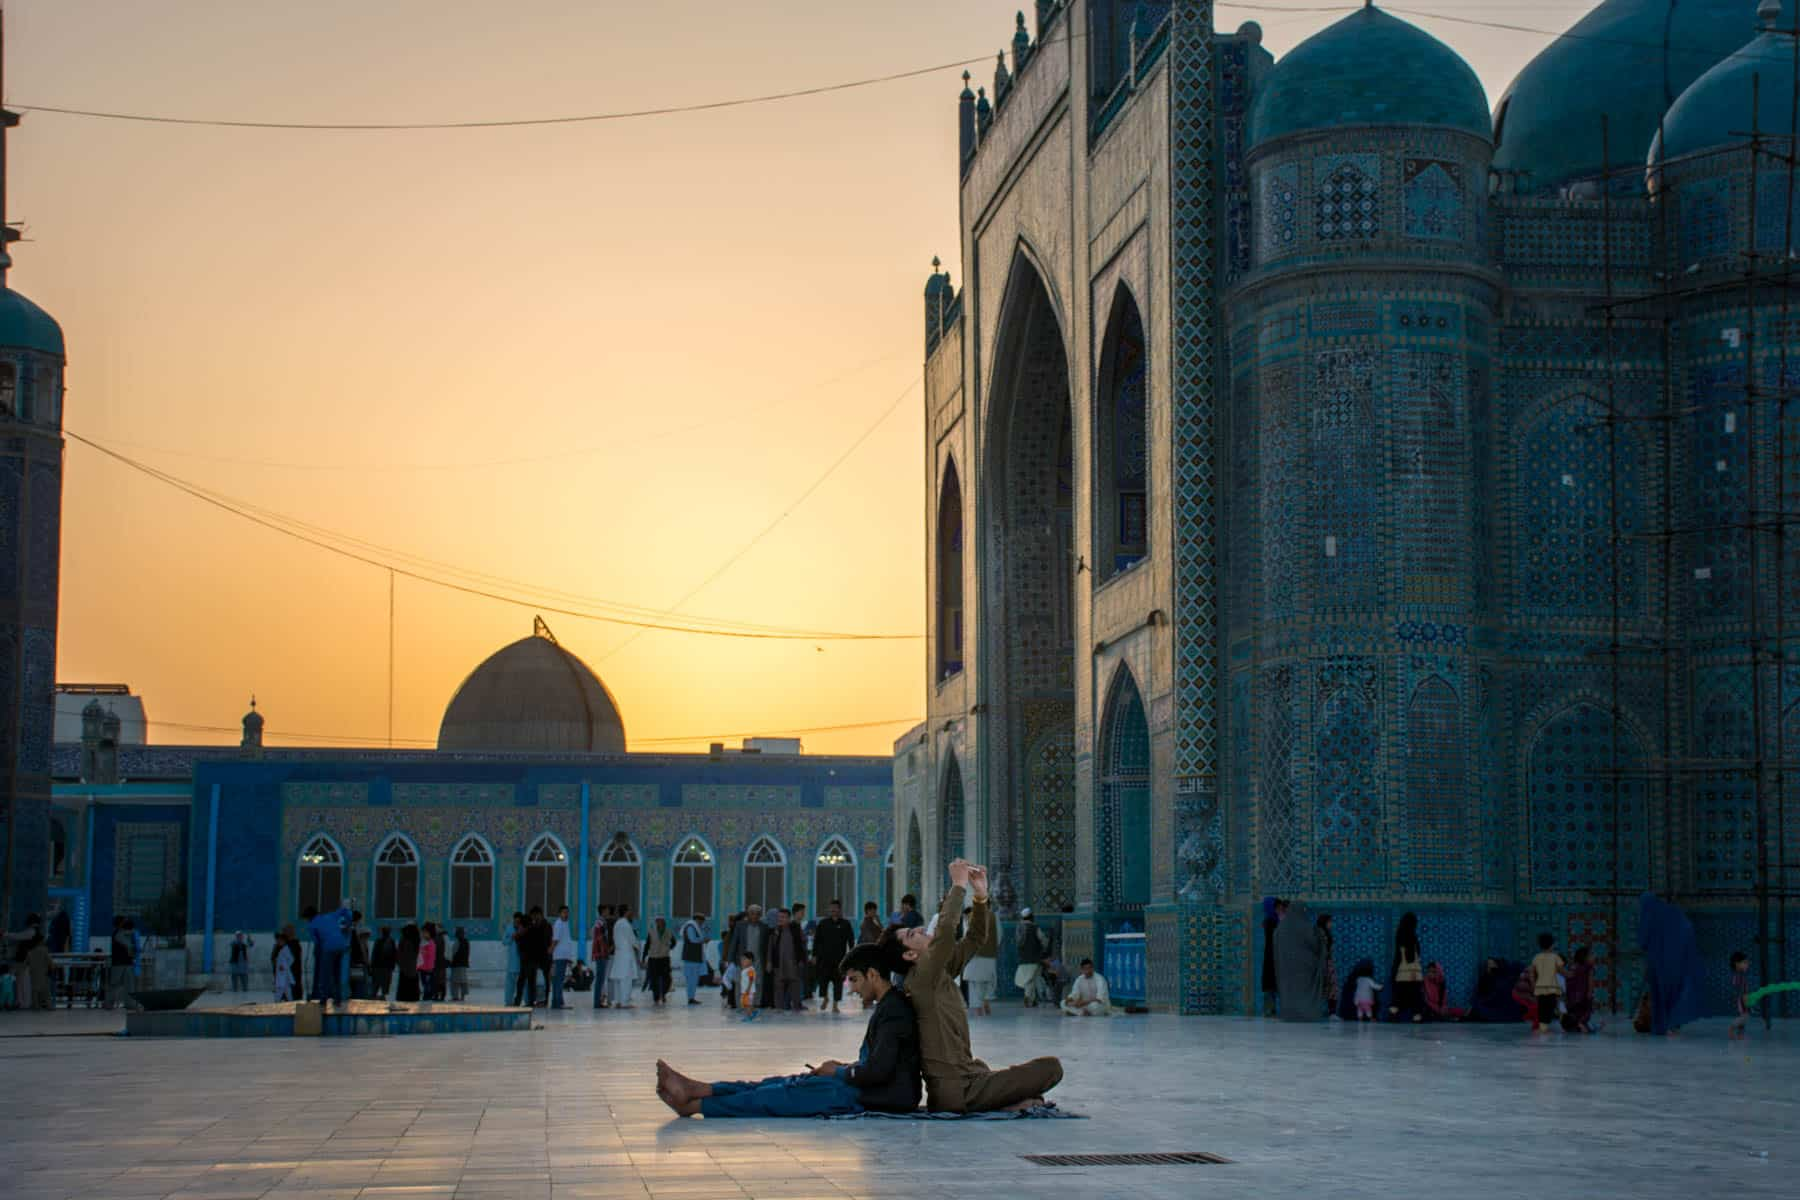 Photos of Mazar-i-Sharif, Afghanistan - Boys taking selfies at sunset at the Blue Mosque - Lost With Purpose